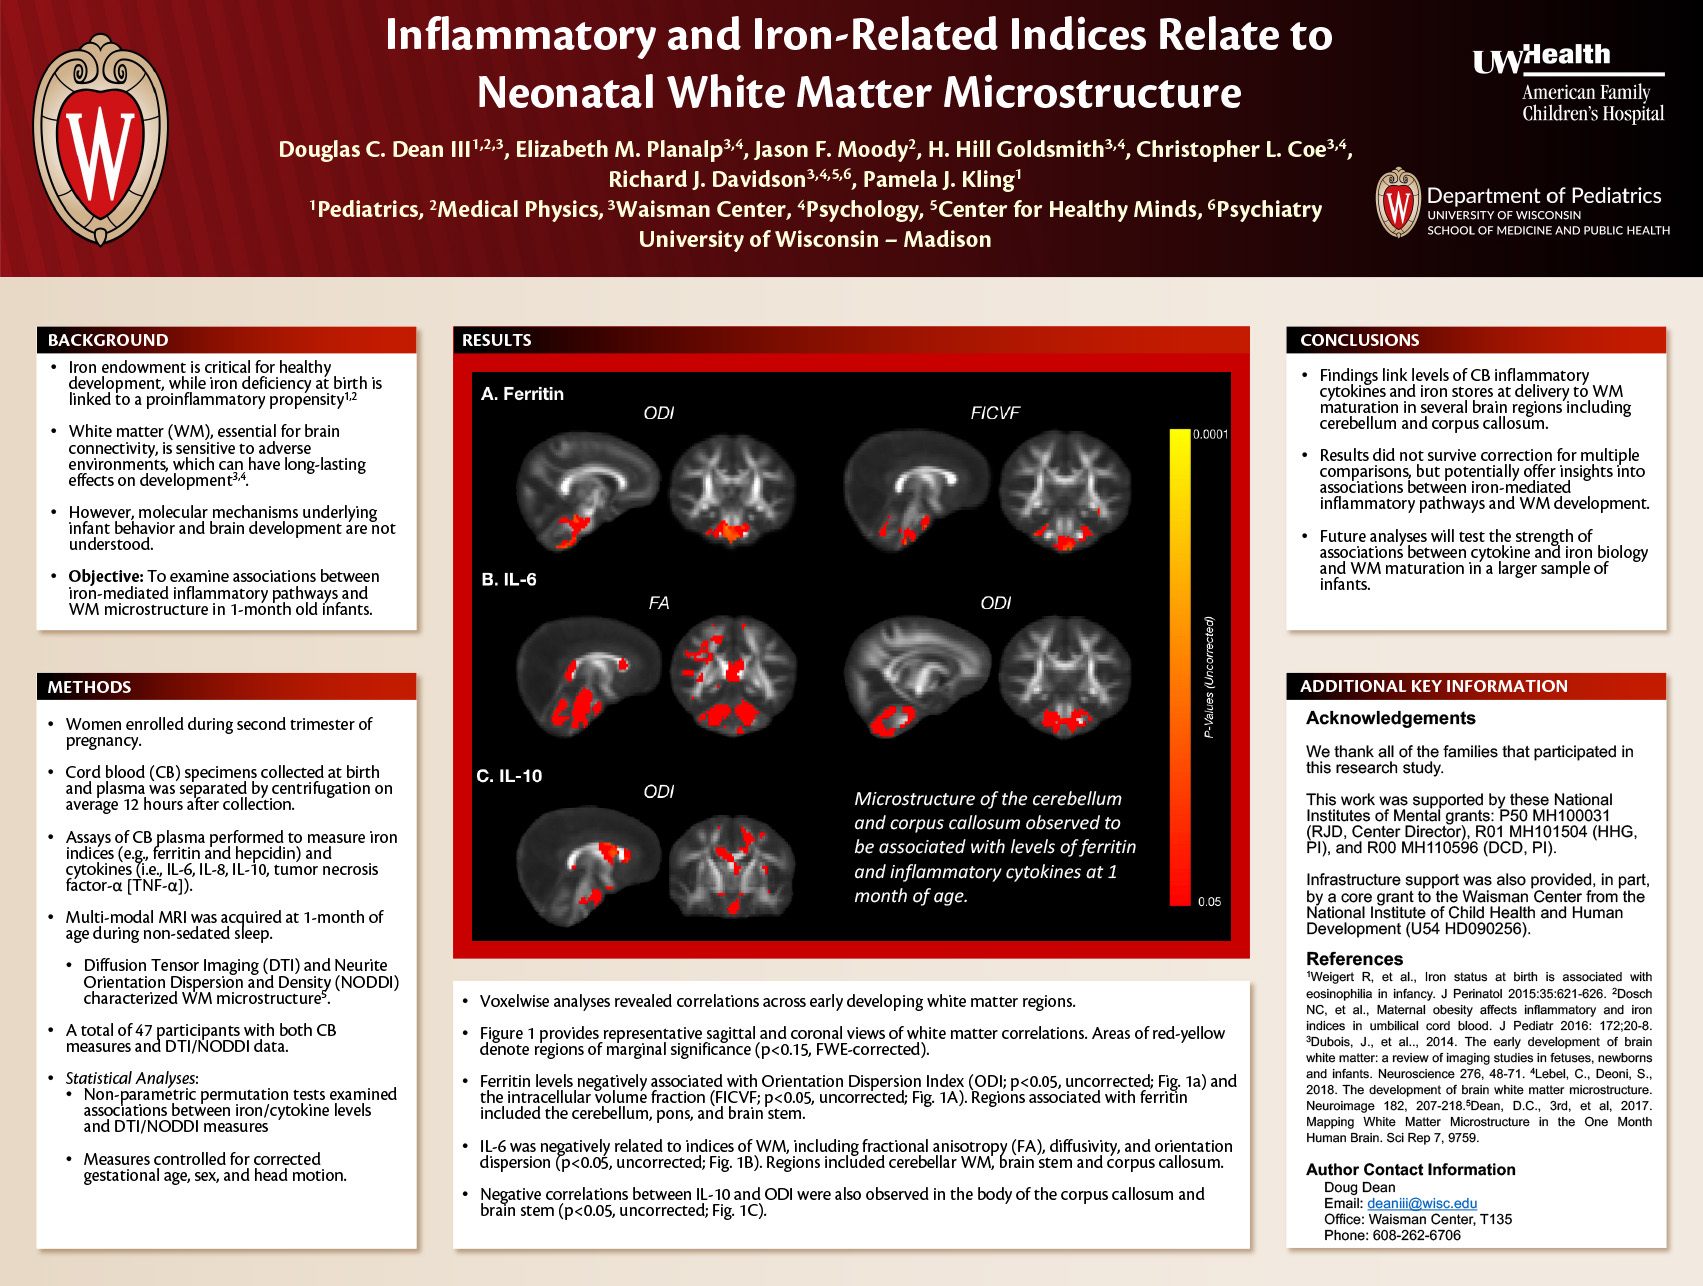 Inflammatory and Iron-Related Indices Relate to Neonatal White Matter Microstructure poster image